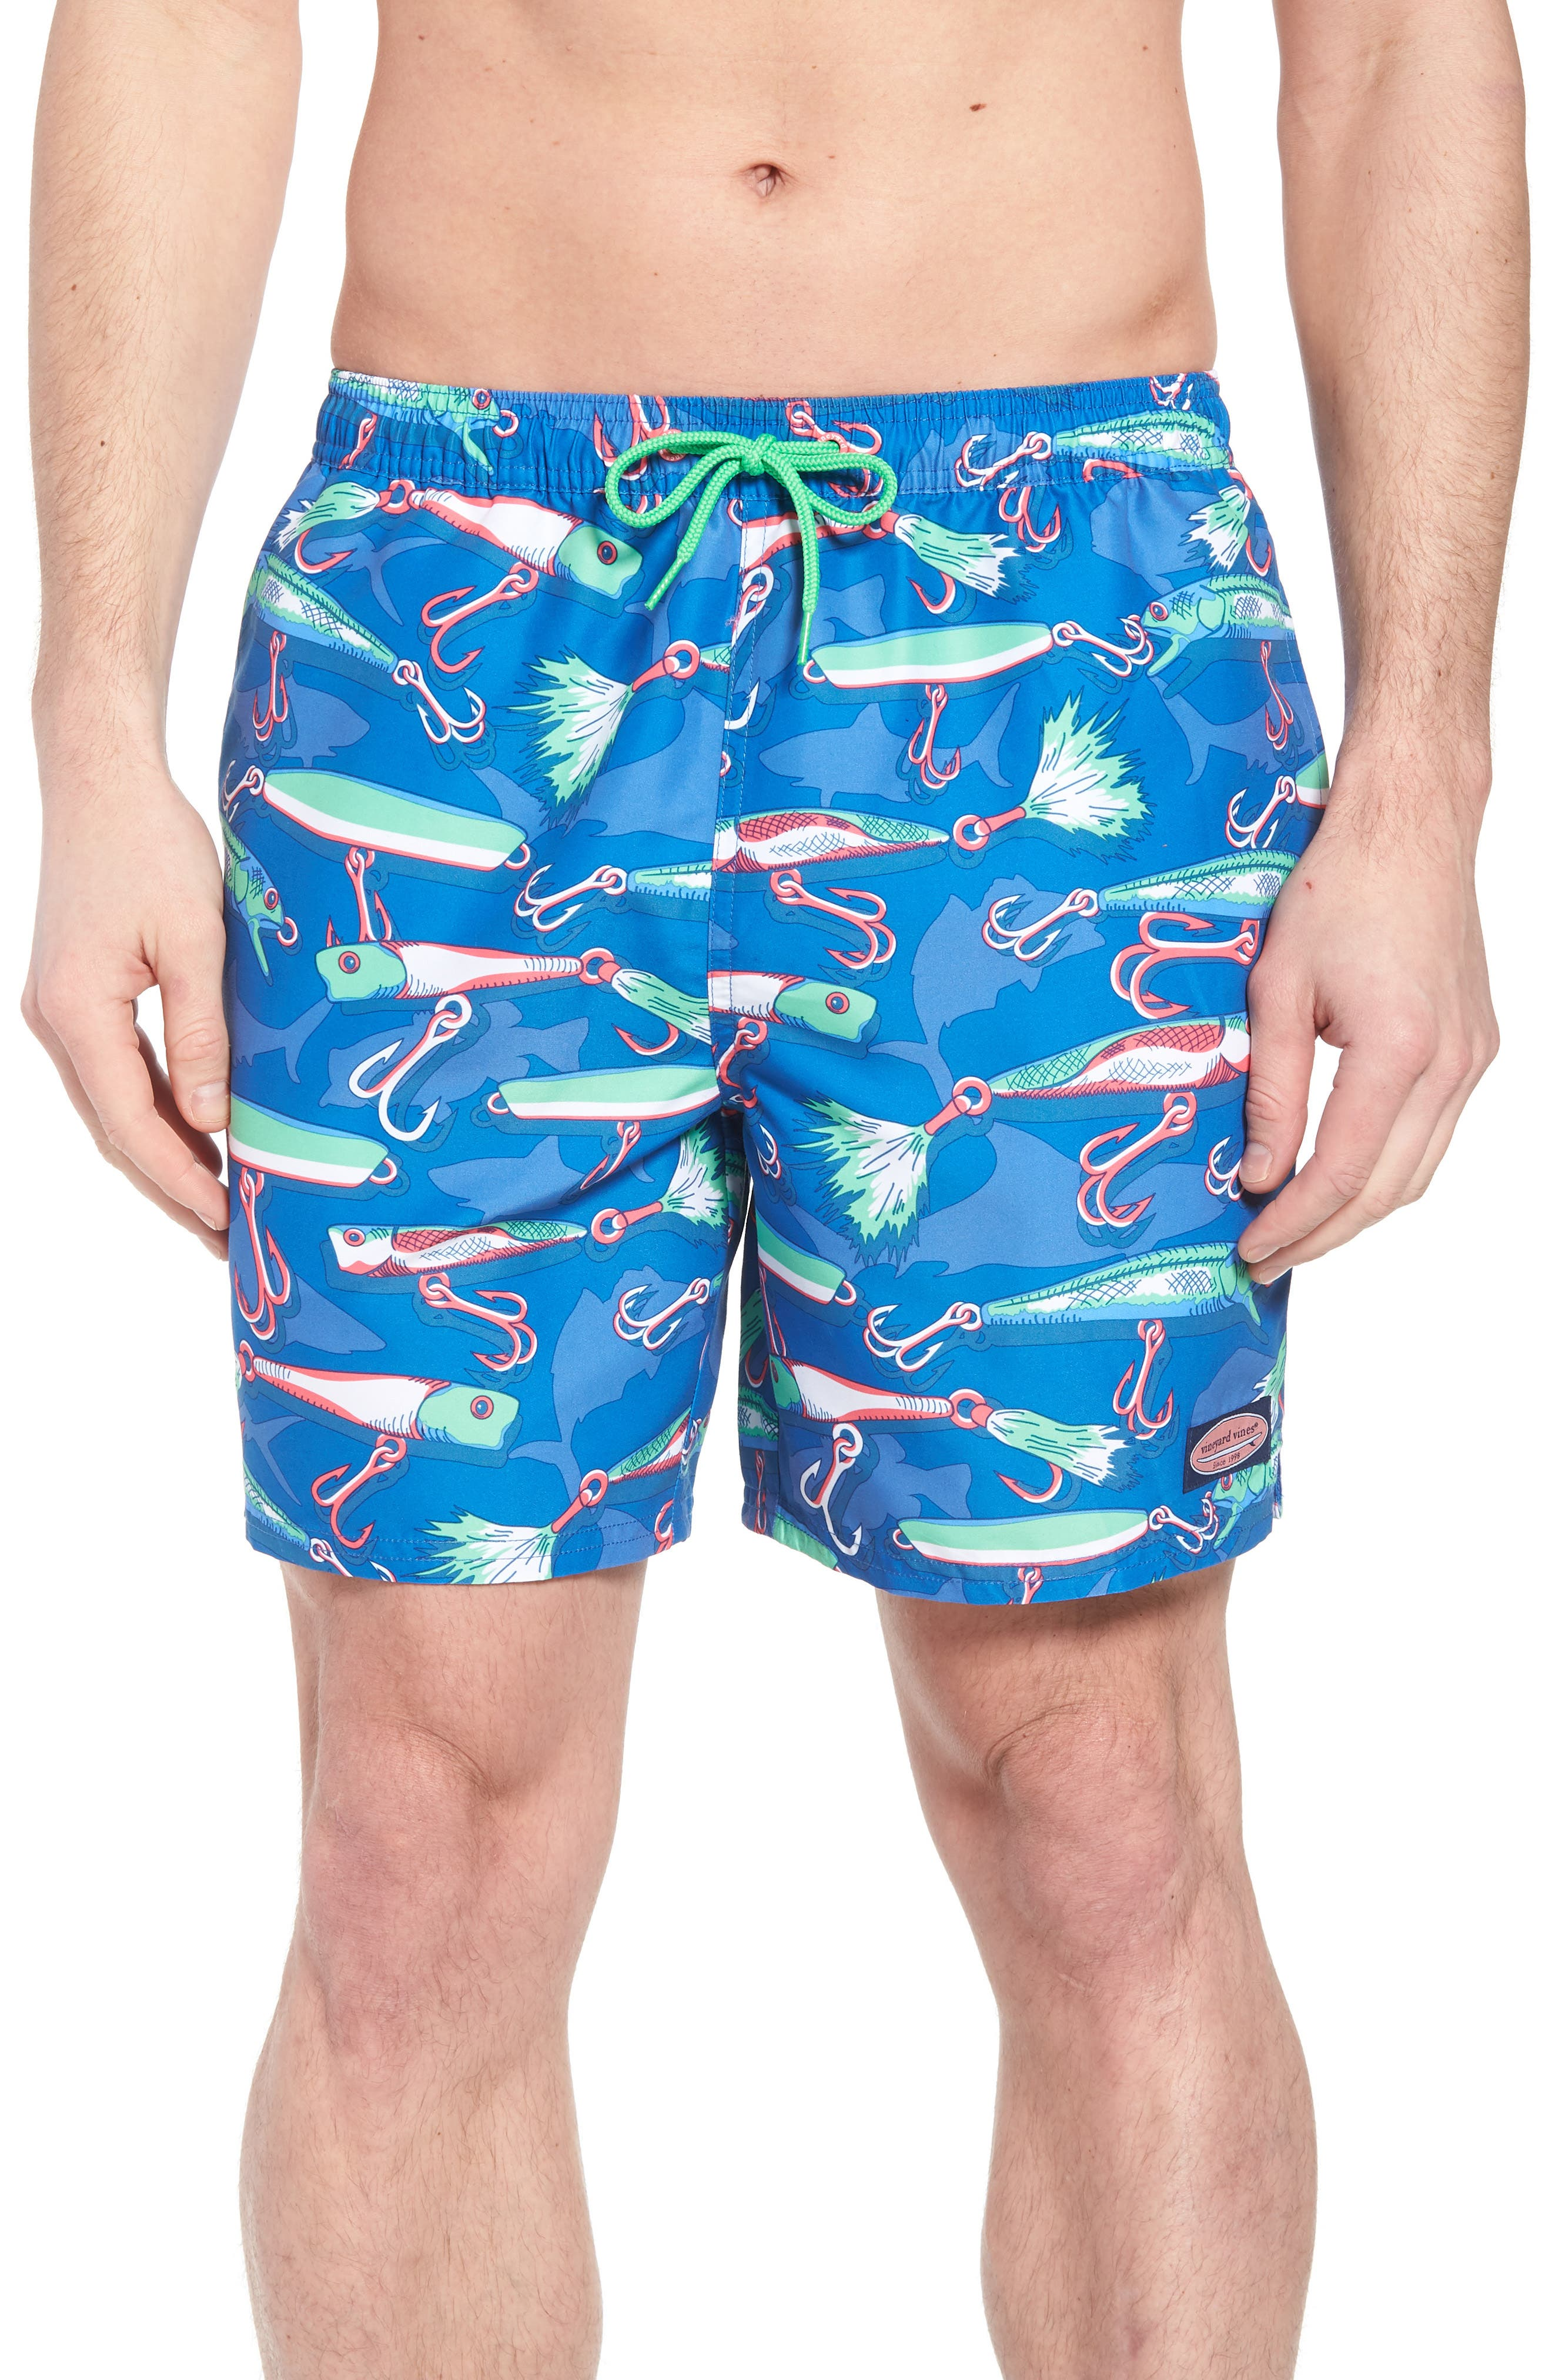 Chappy Lures Swim Trunks,                             Main thumbnail 1, color,                             Hull Blue